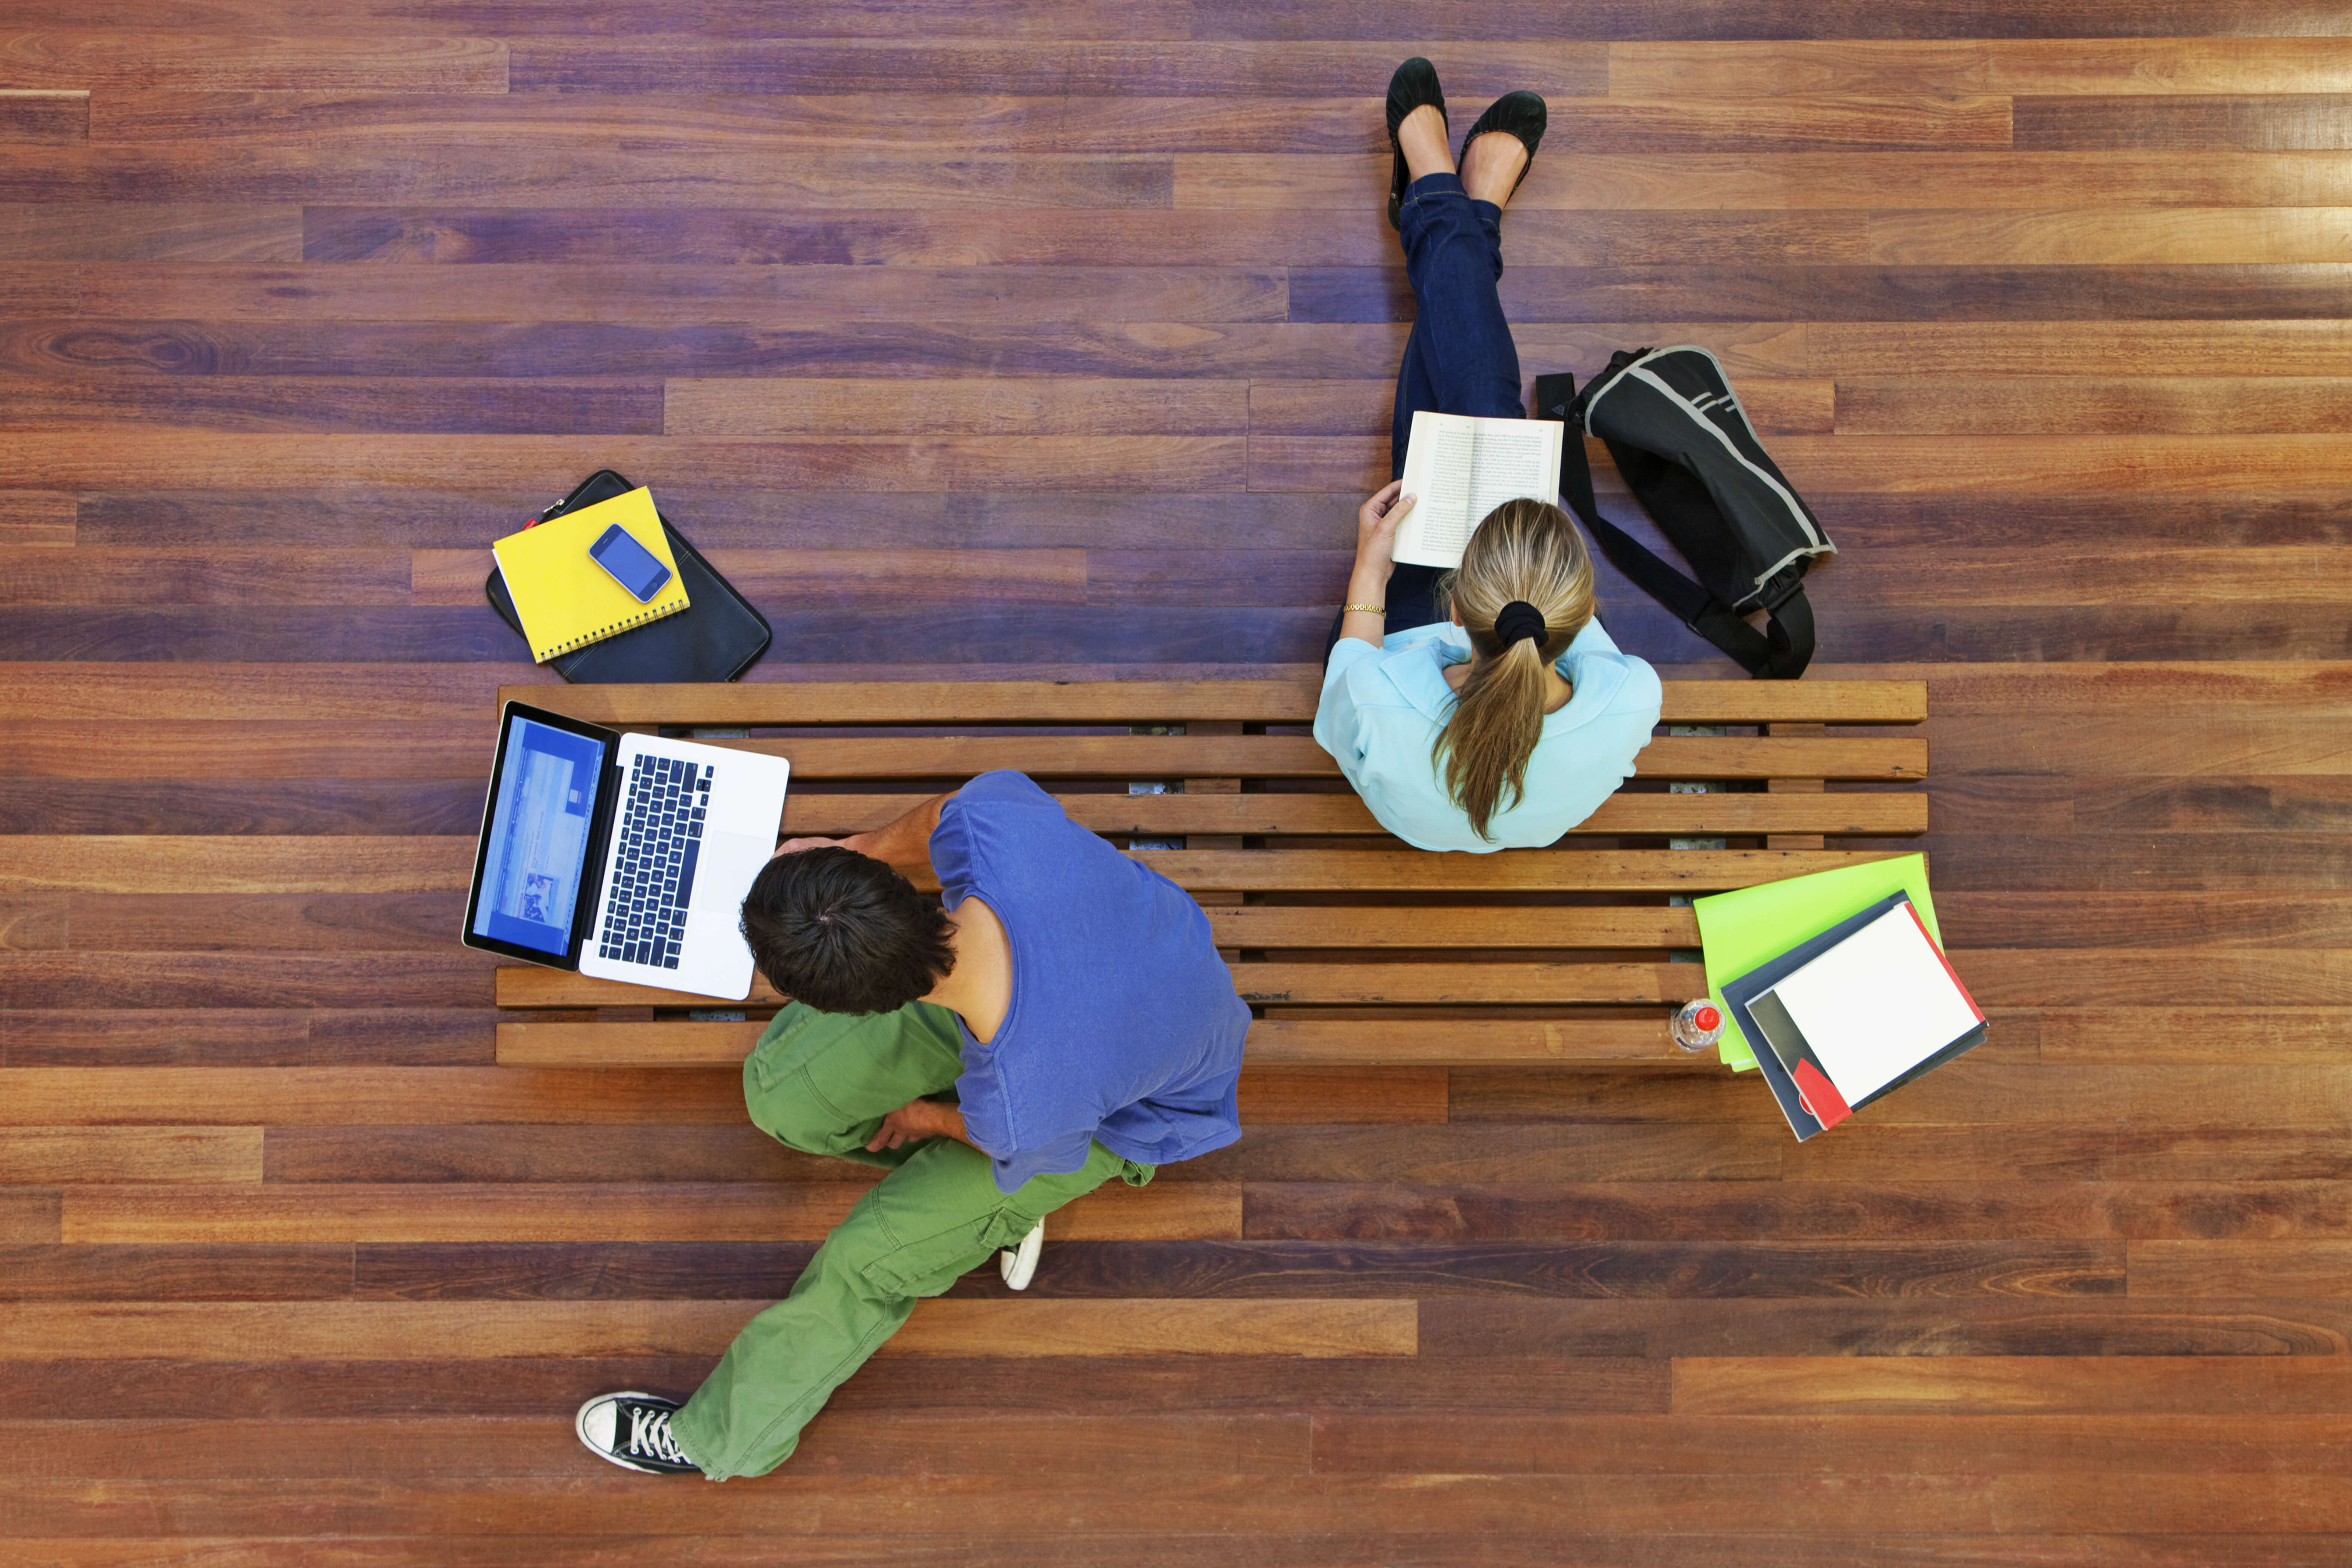 College students can use MyLittleJob to earn money.